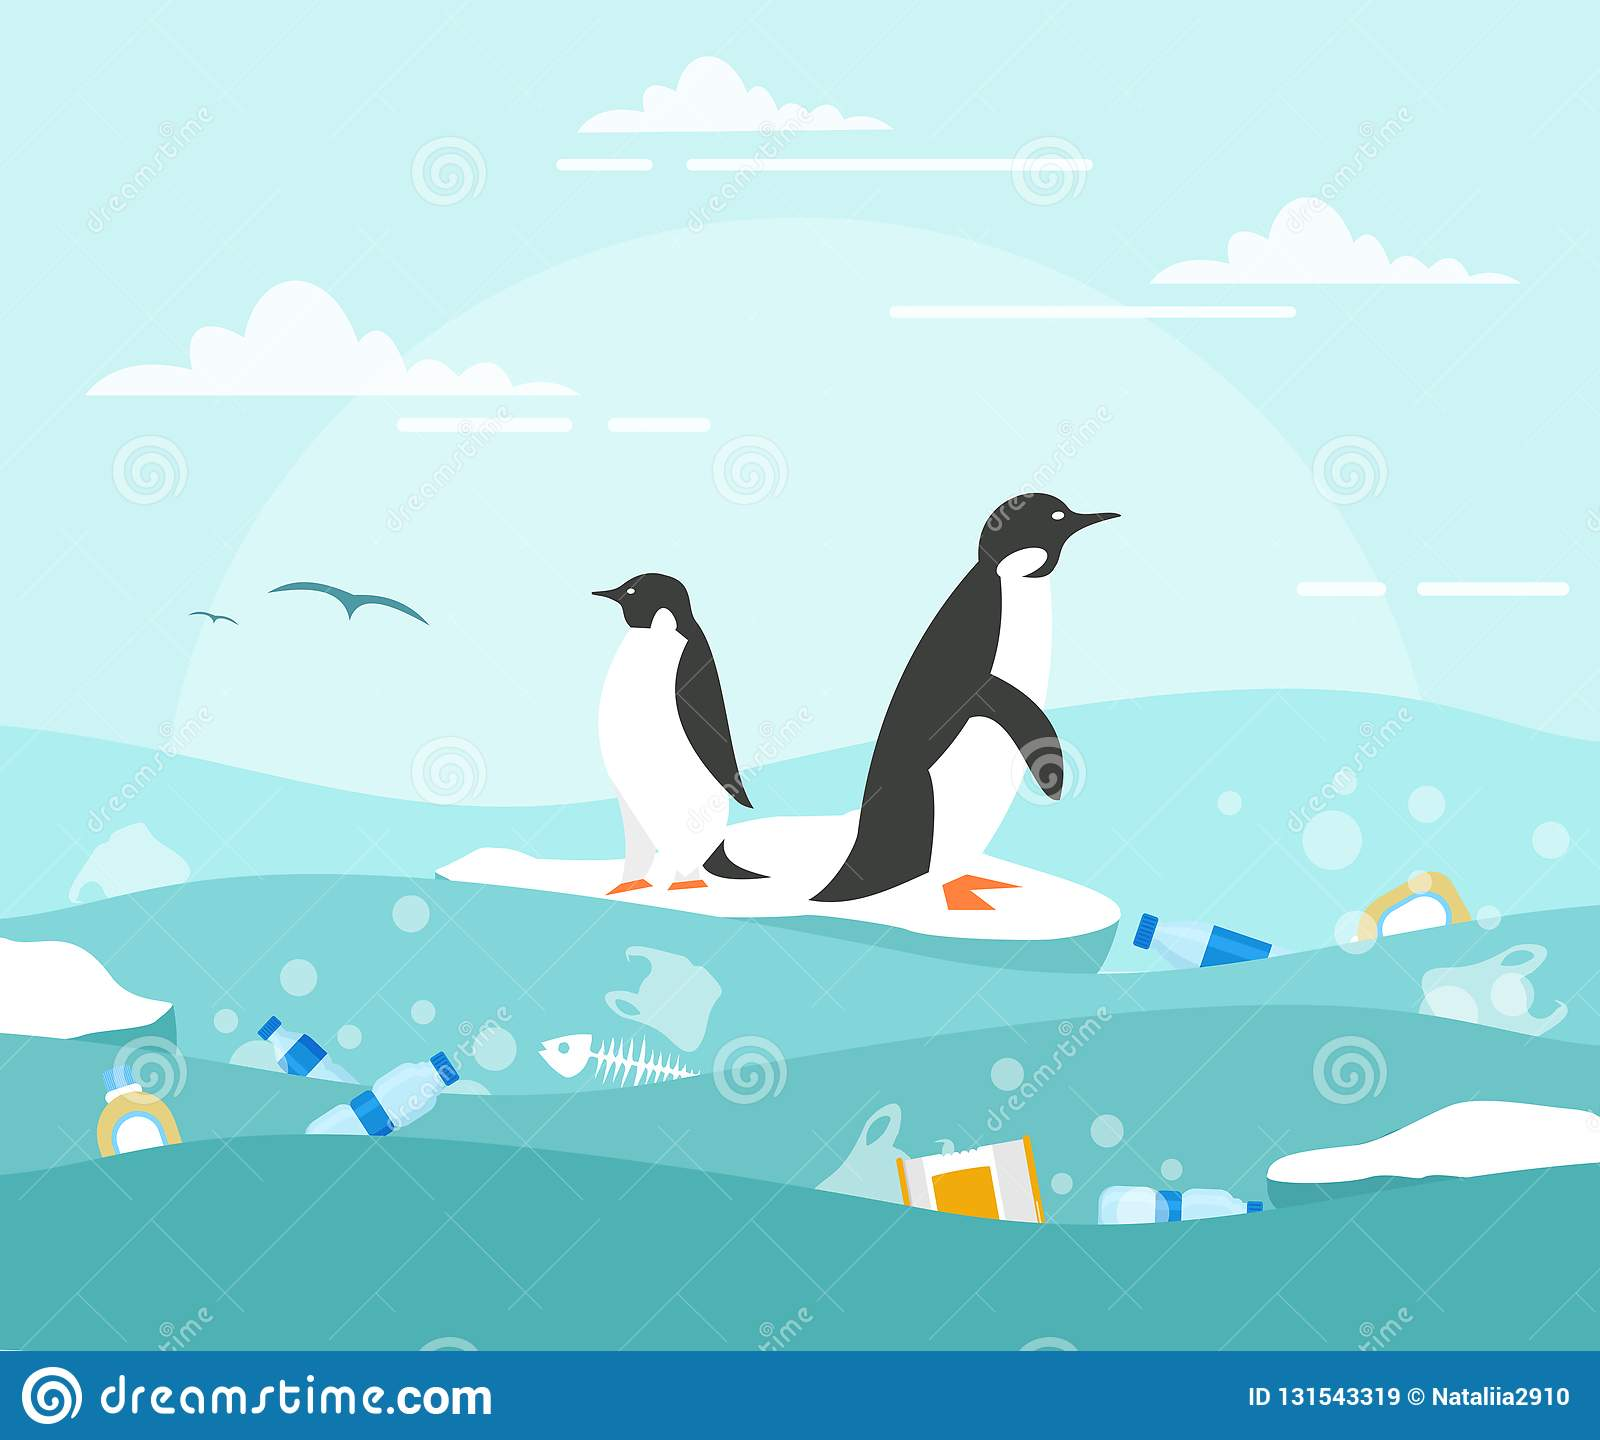 Vector illustration concept of ocean pollution with plastic waste. Penguins on the small piece of ice and lot of waste